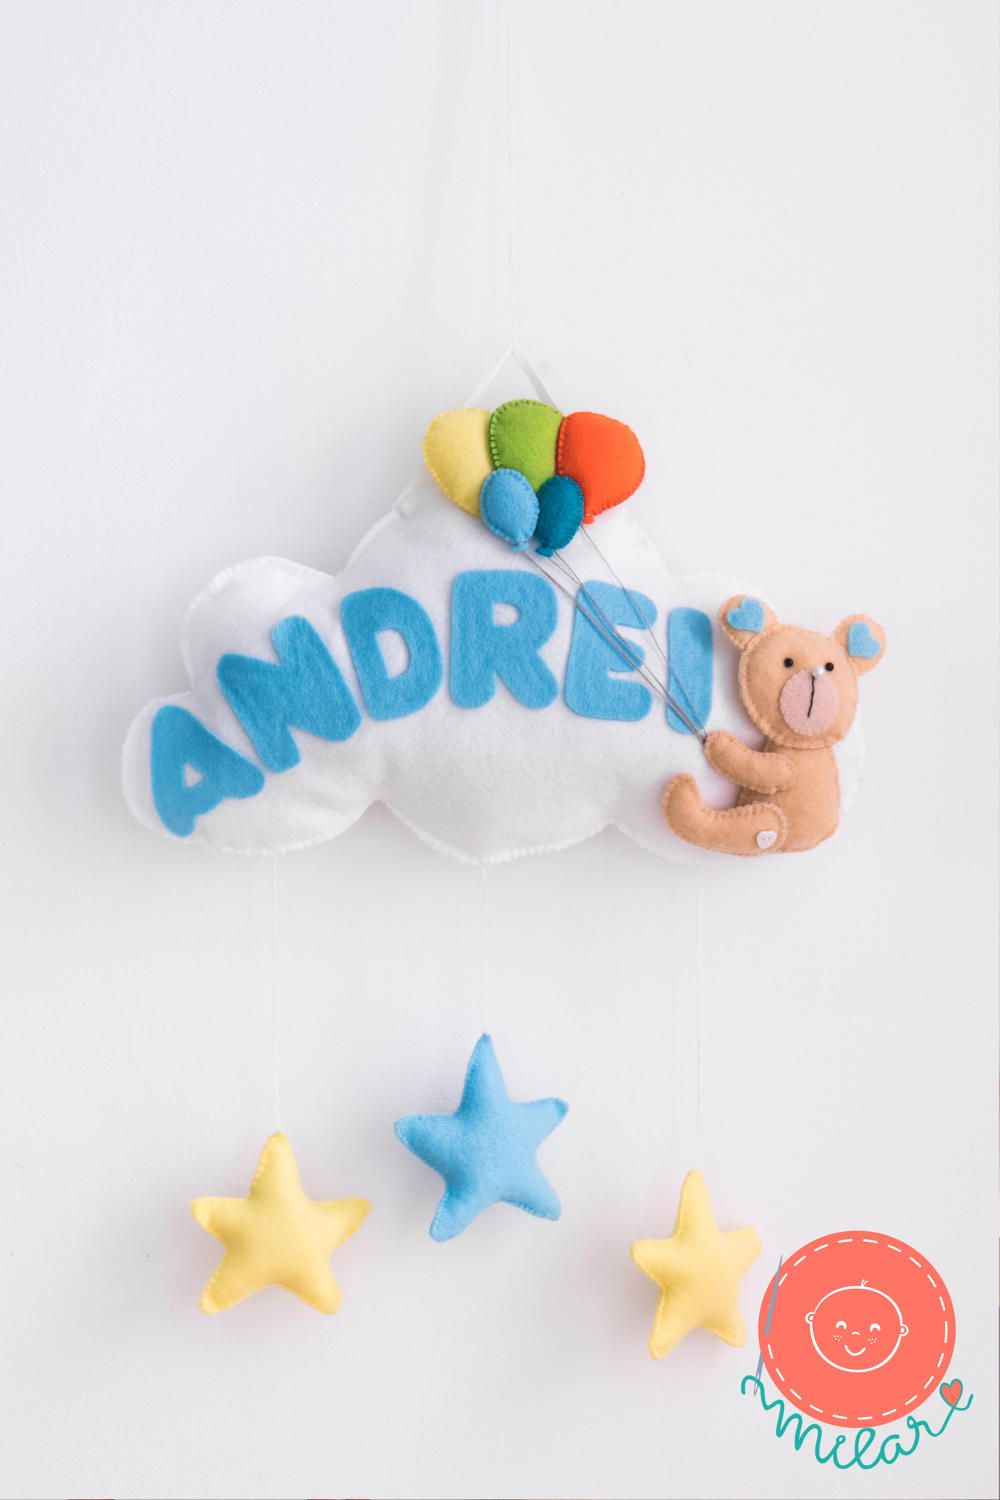 Baby boy gifts baby shower gift ideas custom name gift baby baby boy gifts baby shower gift ideas custom name gift baby room decor new baby gifts custom names personalized baby gifts negle Gallery